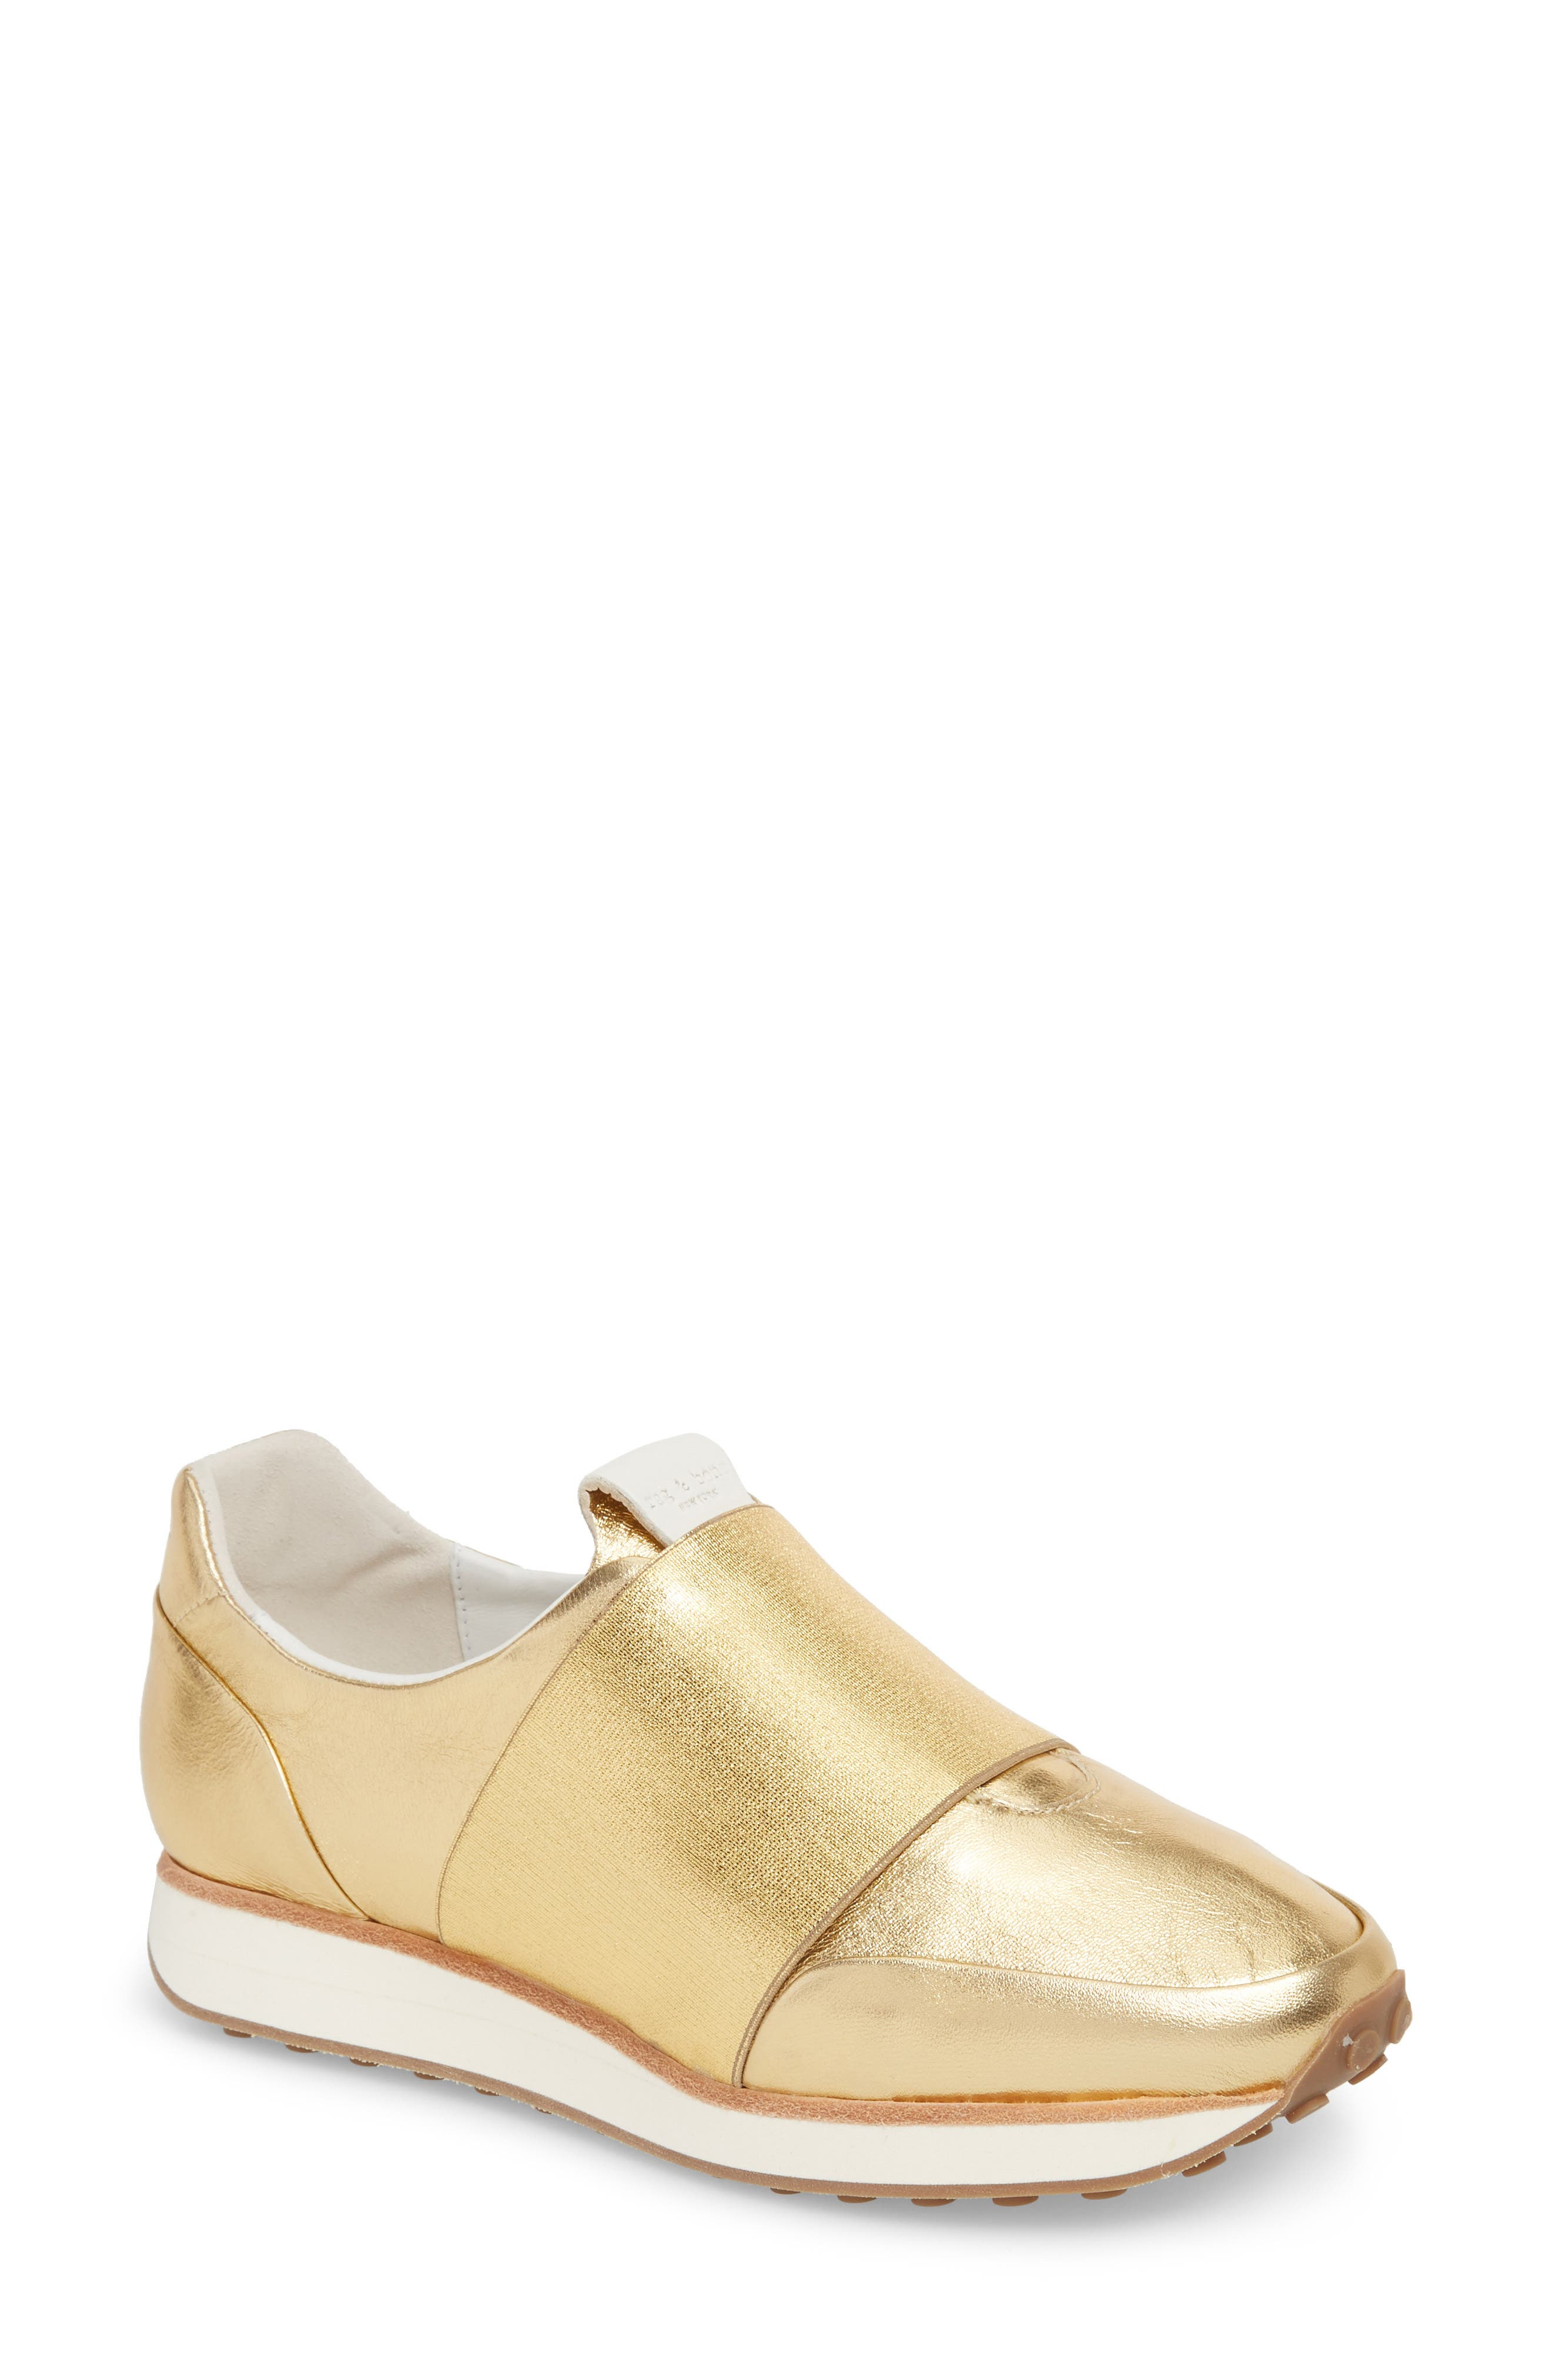 Dylan Sneaker,                             Main thumbnail 1, color,                             GOLD